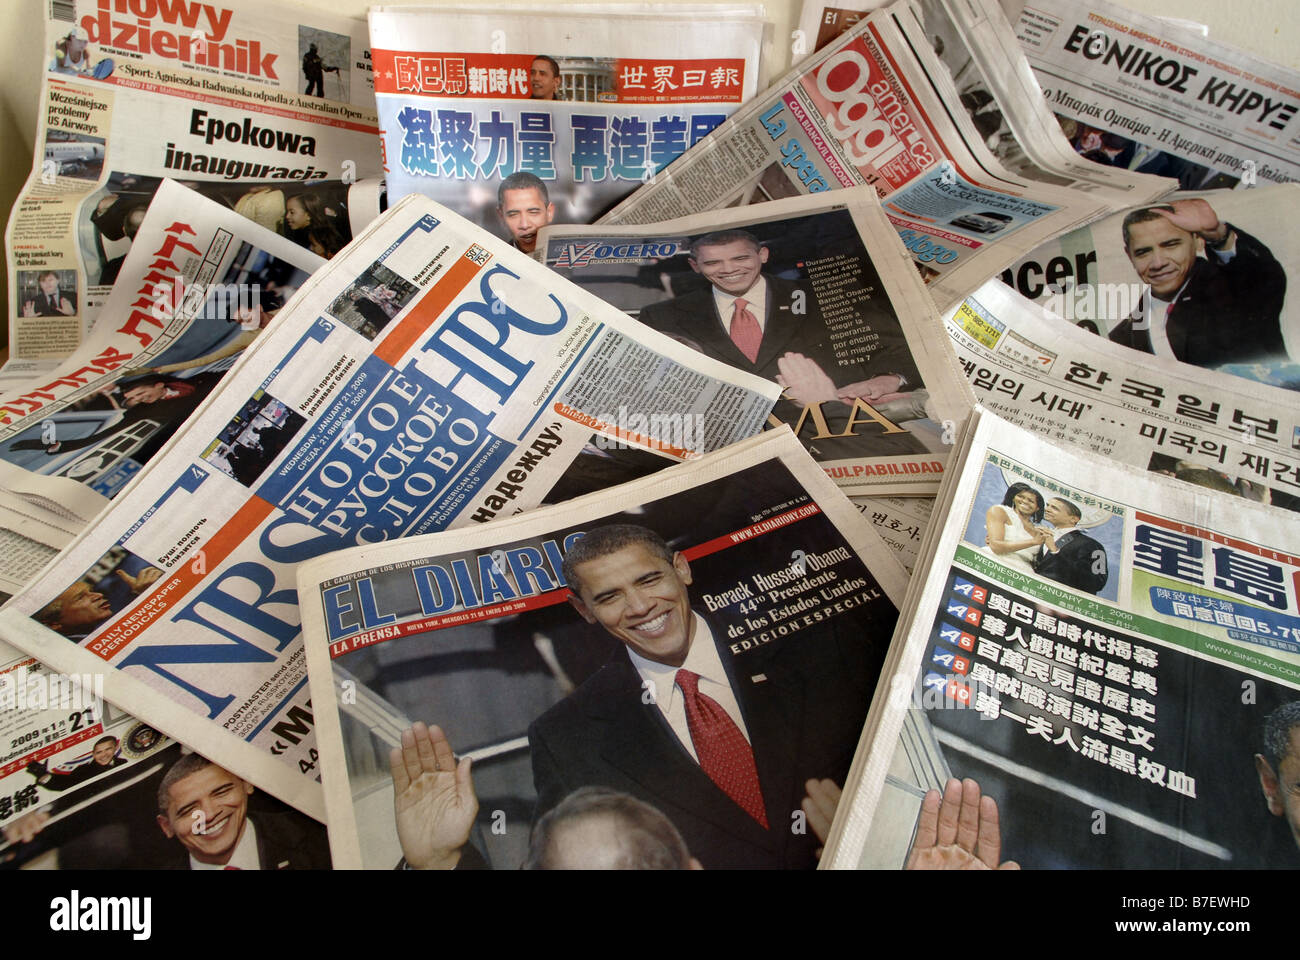 Ethnic newspapers in New York cover the inauguration ceremonies of Barack Obama - Stock Image